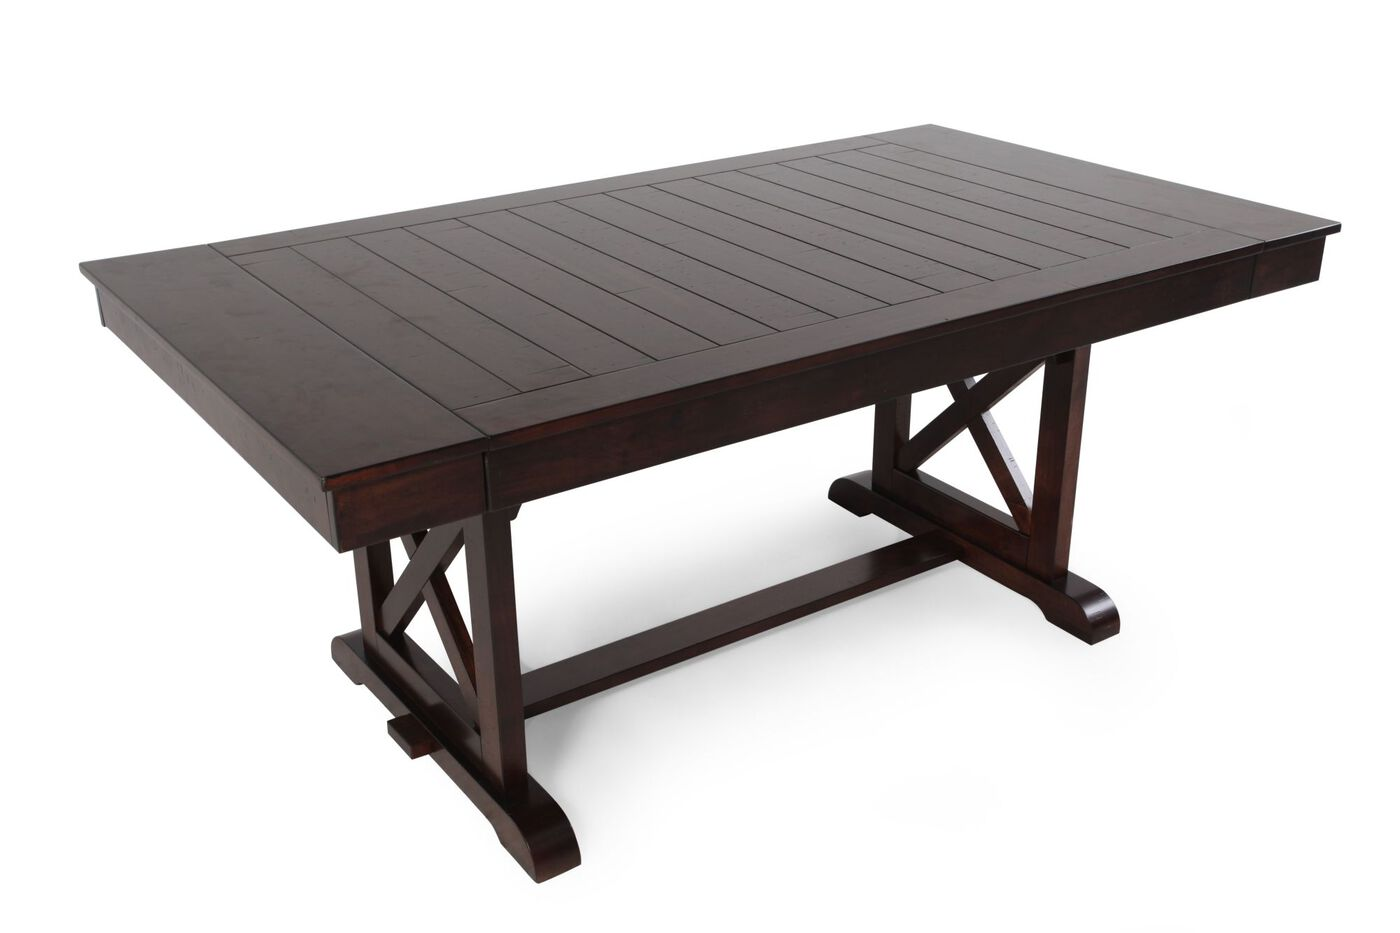 100 Extendable Trestle Dining Table Amazon Com  : WIN DJ14094 3 from 45.77.108.62 size 1400 x 933 jpeg 63kB